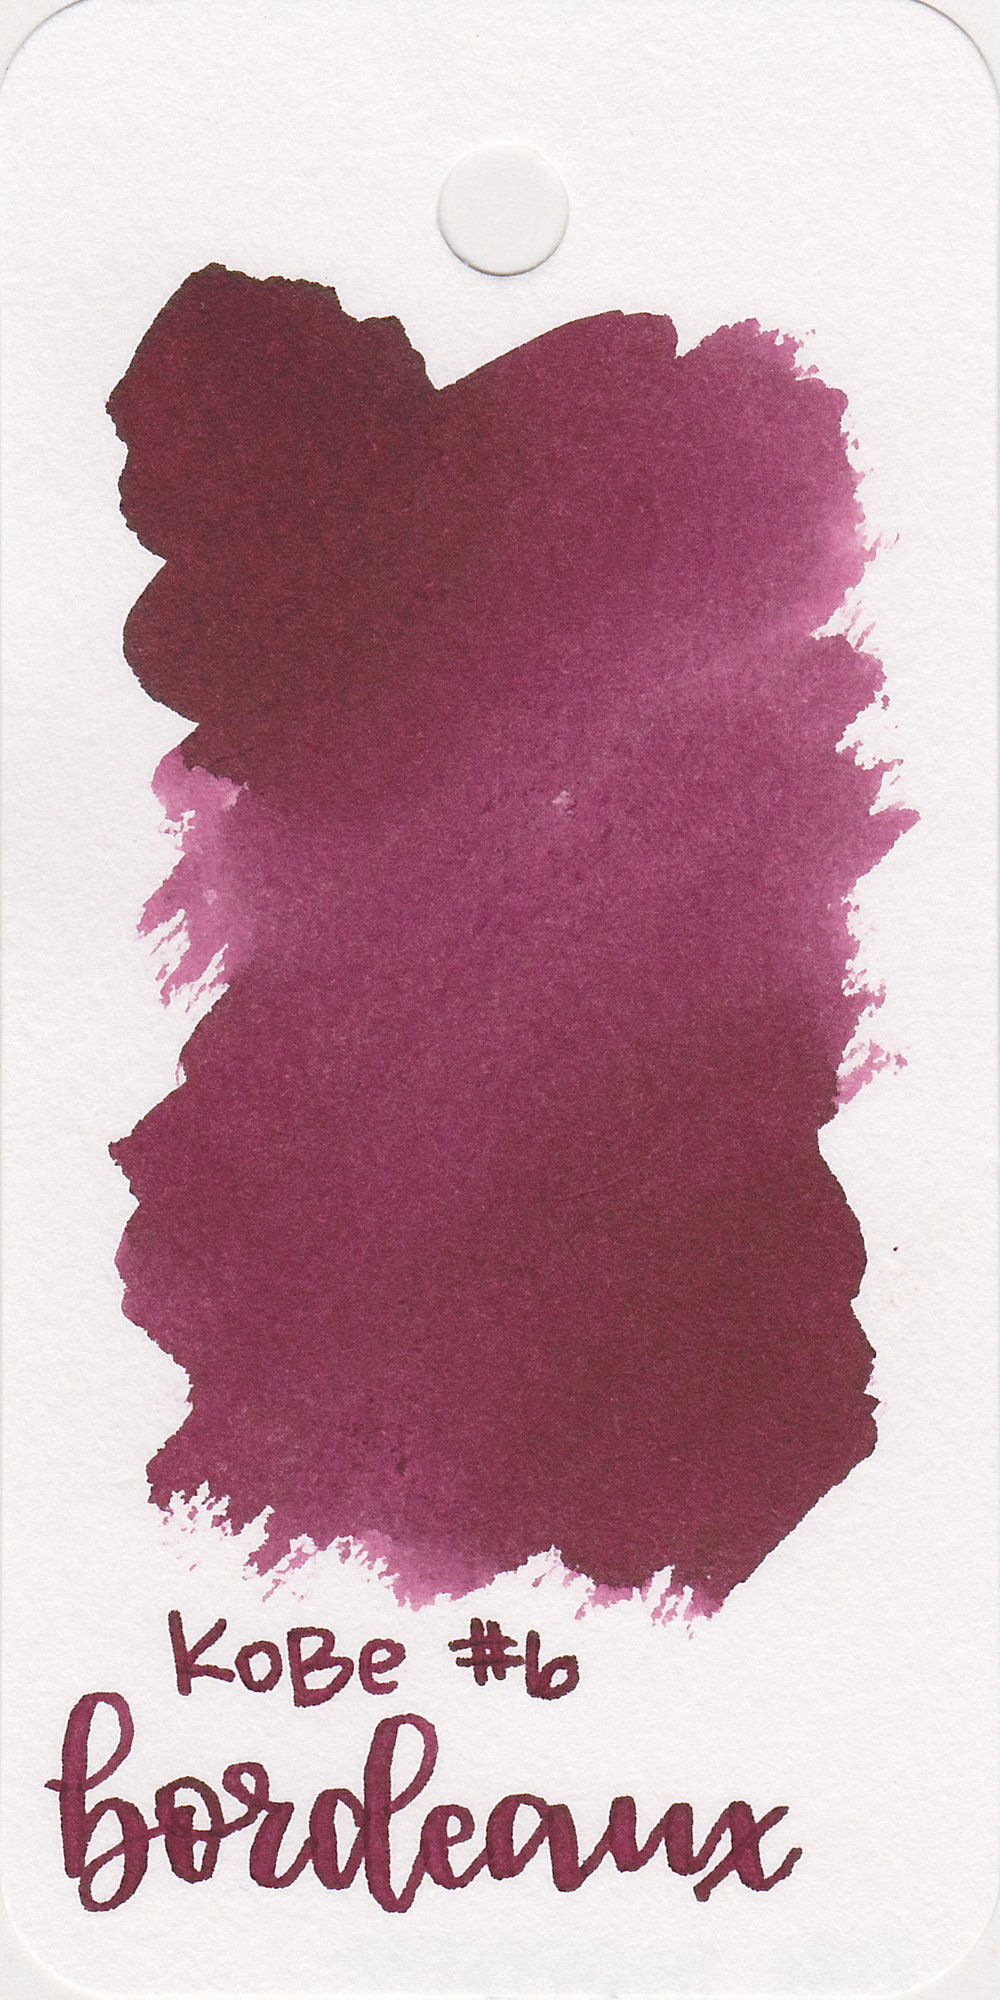 The color: - Bordeaux is, well, a bordeaux red. It has a bit more purple than a maroon, but isn't quite purple.